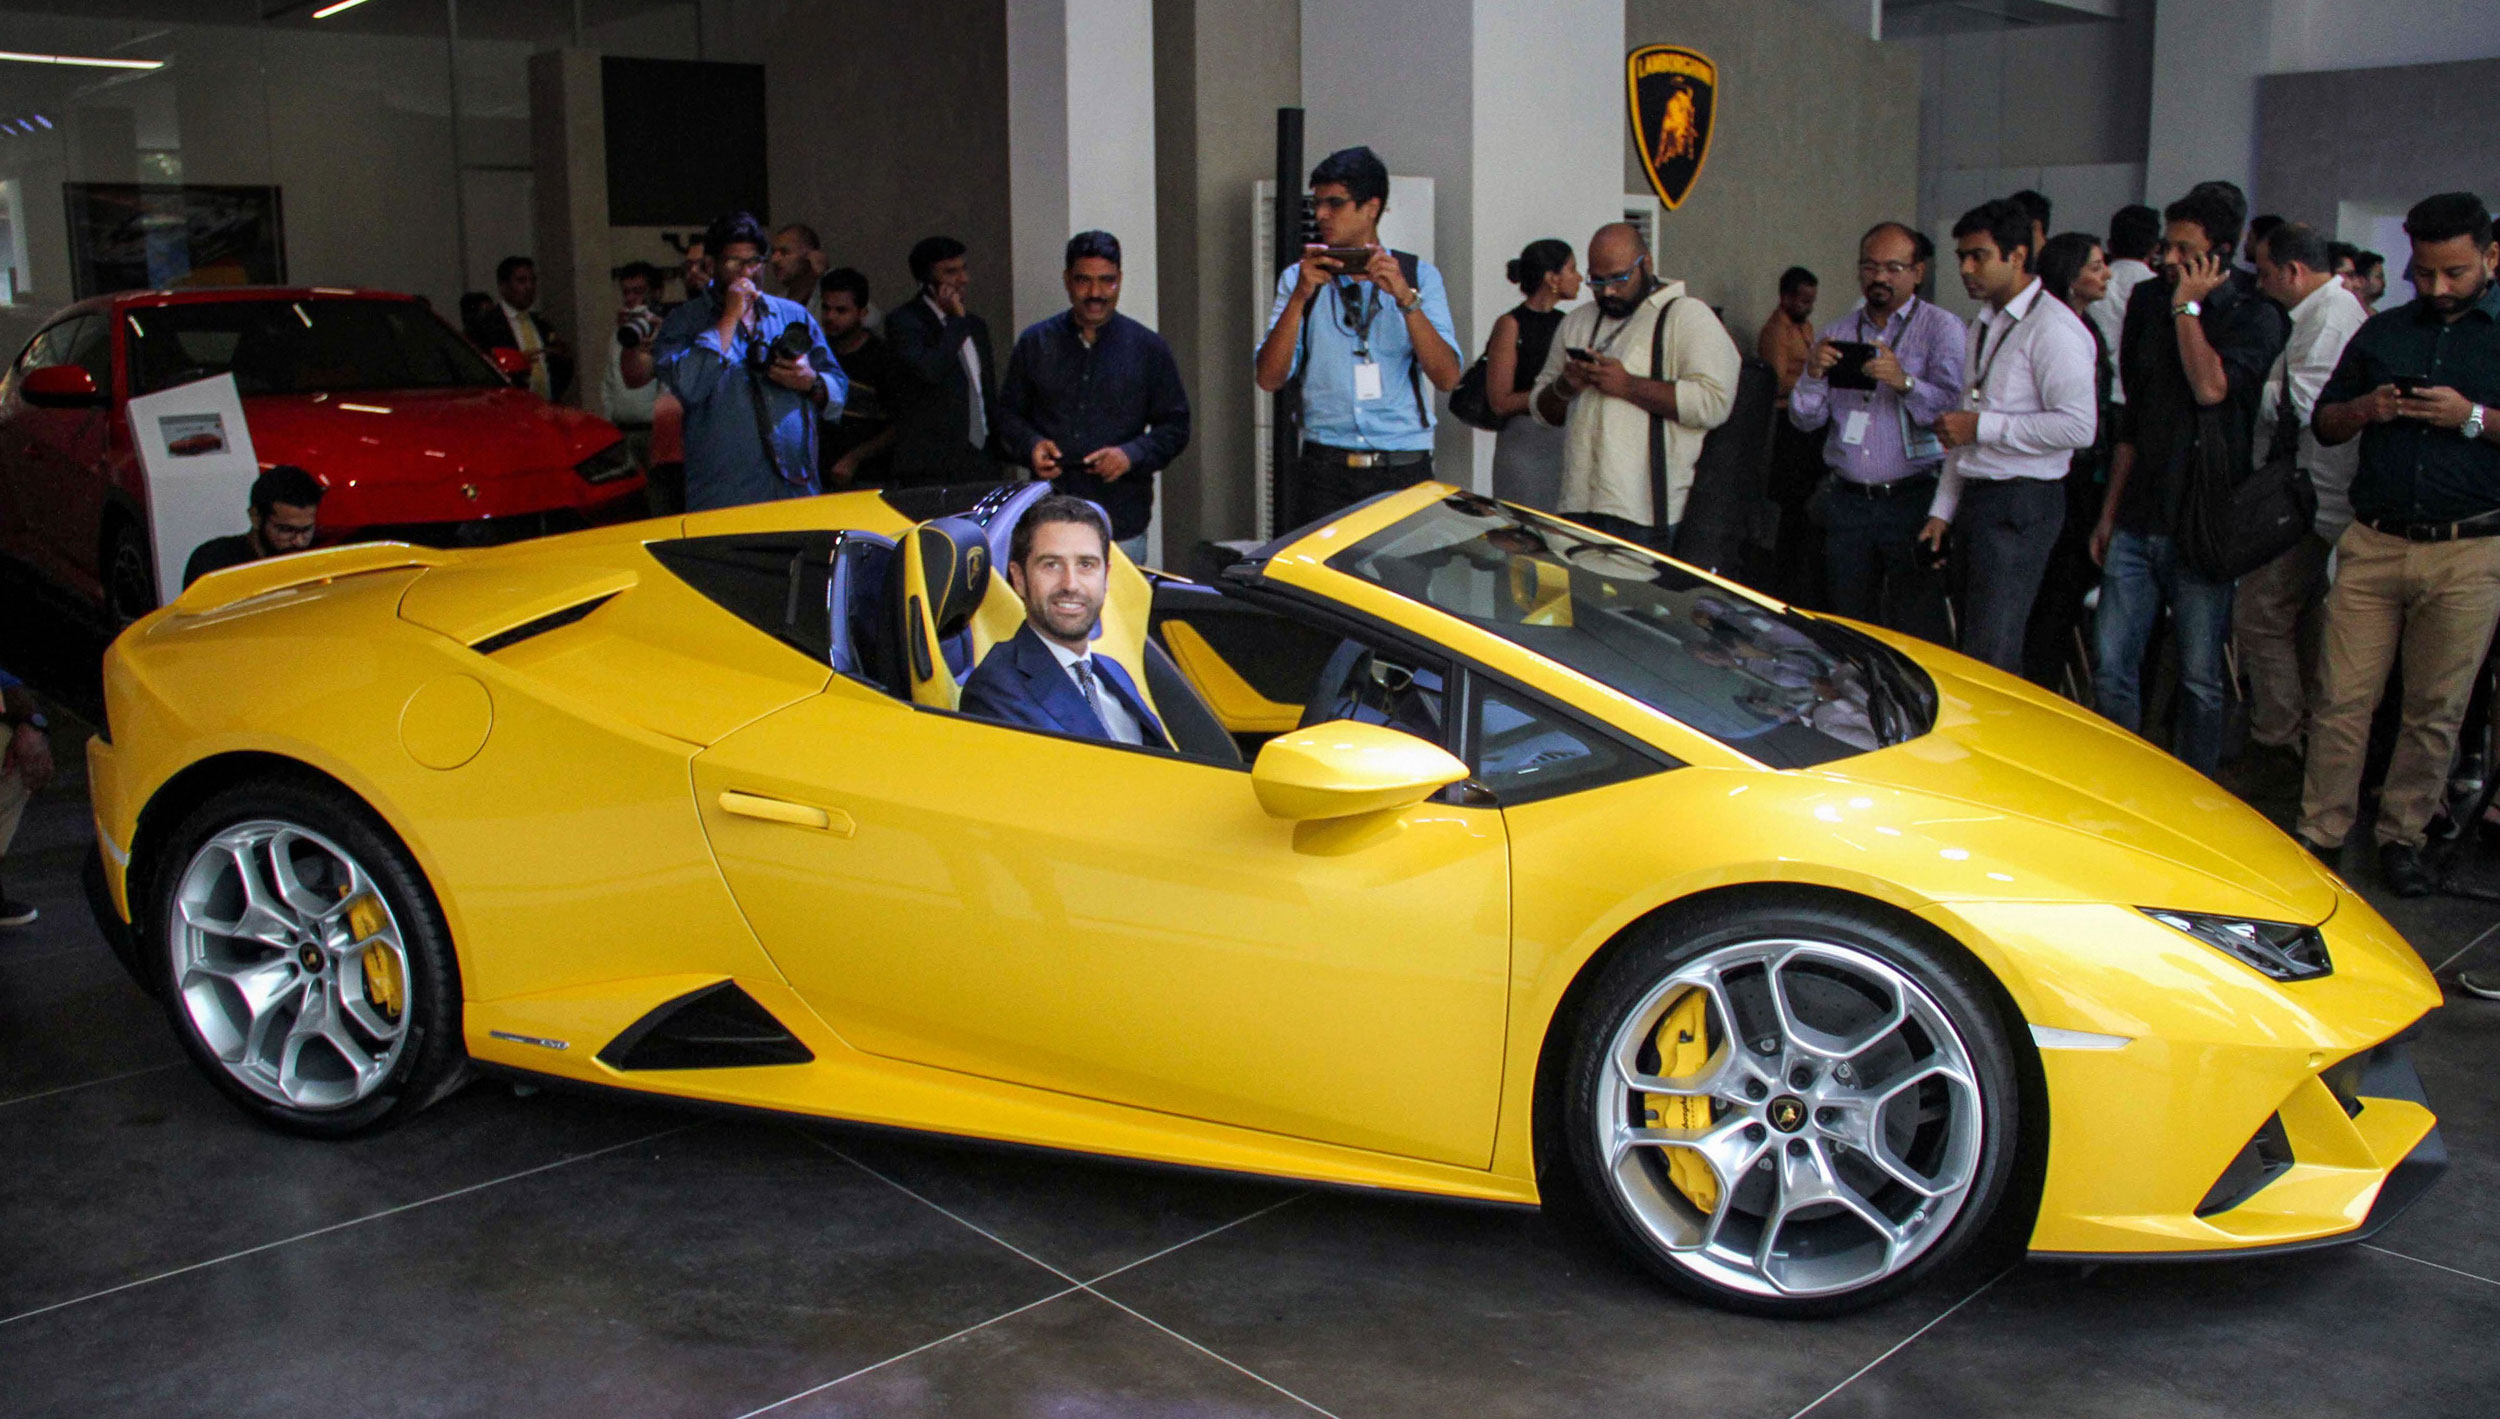 The company recently had a global virtual launch of the Huracan Evo RWD Spyder using augmentative reality (AR).